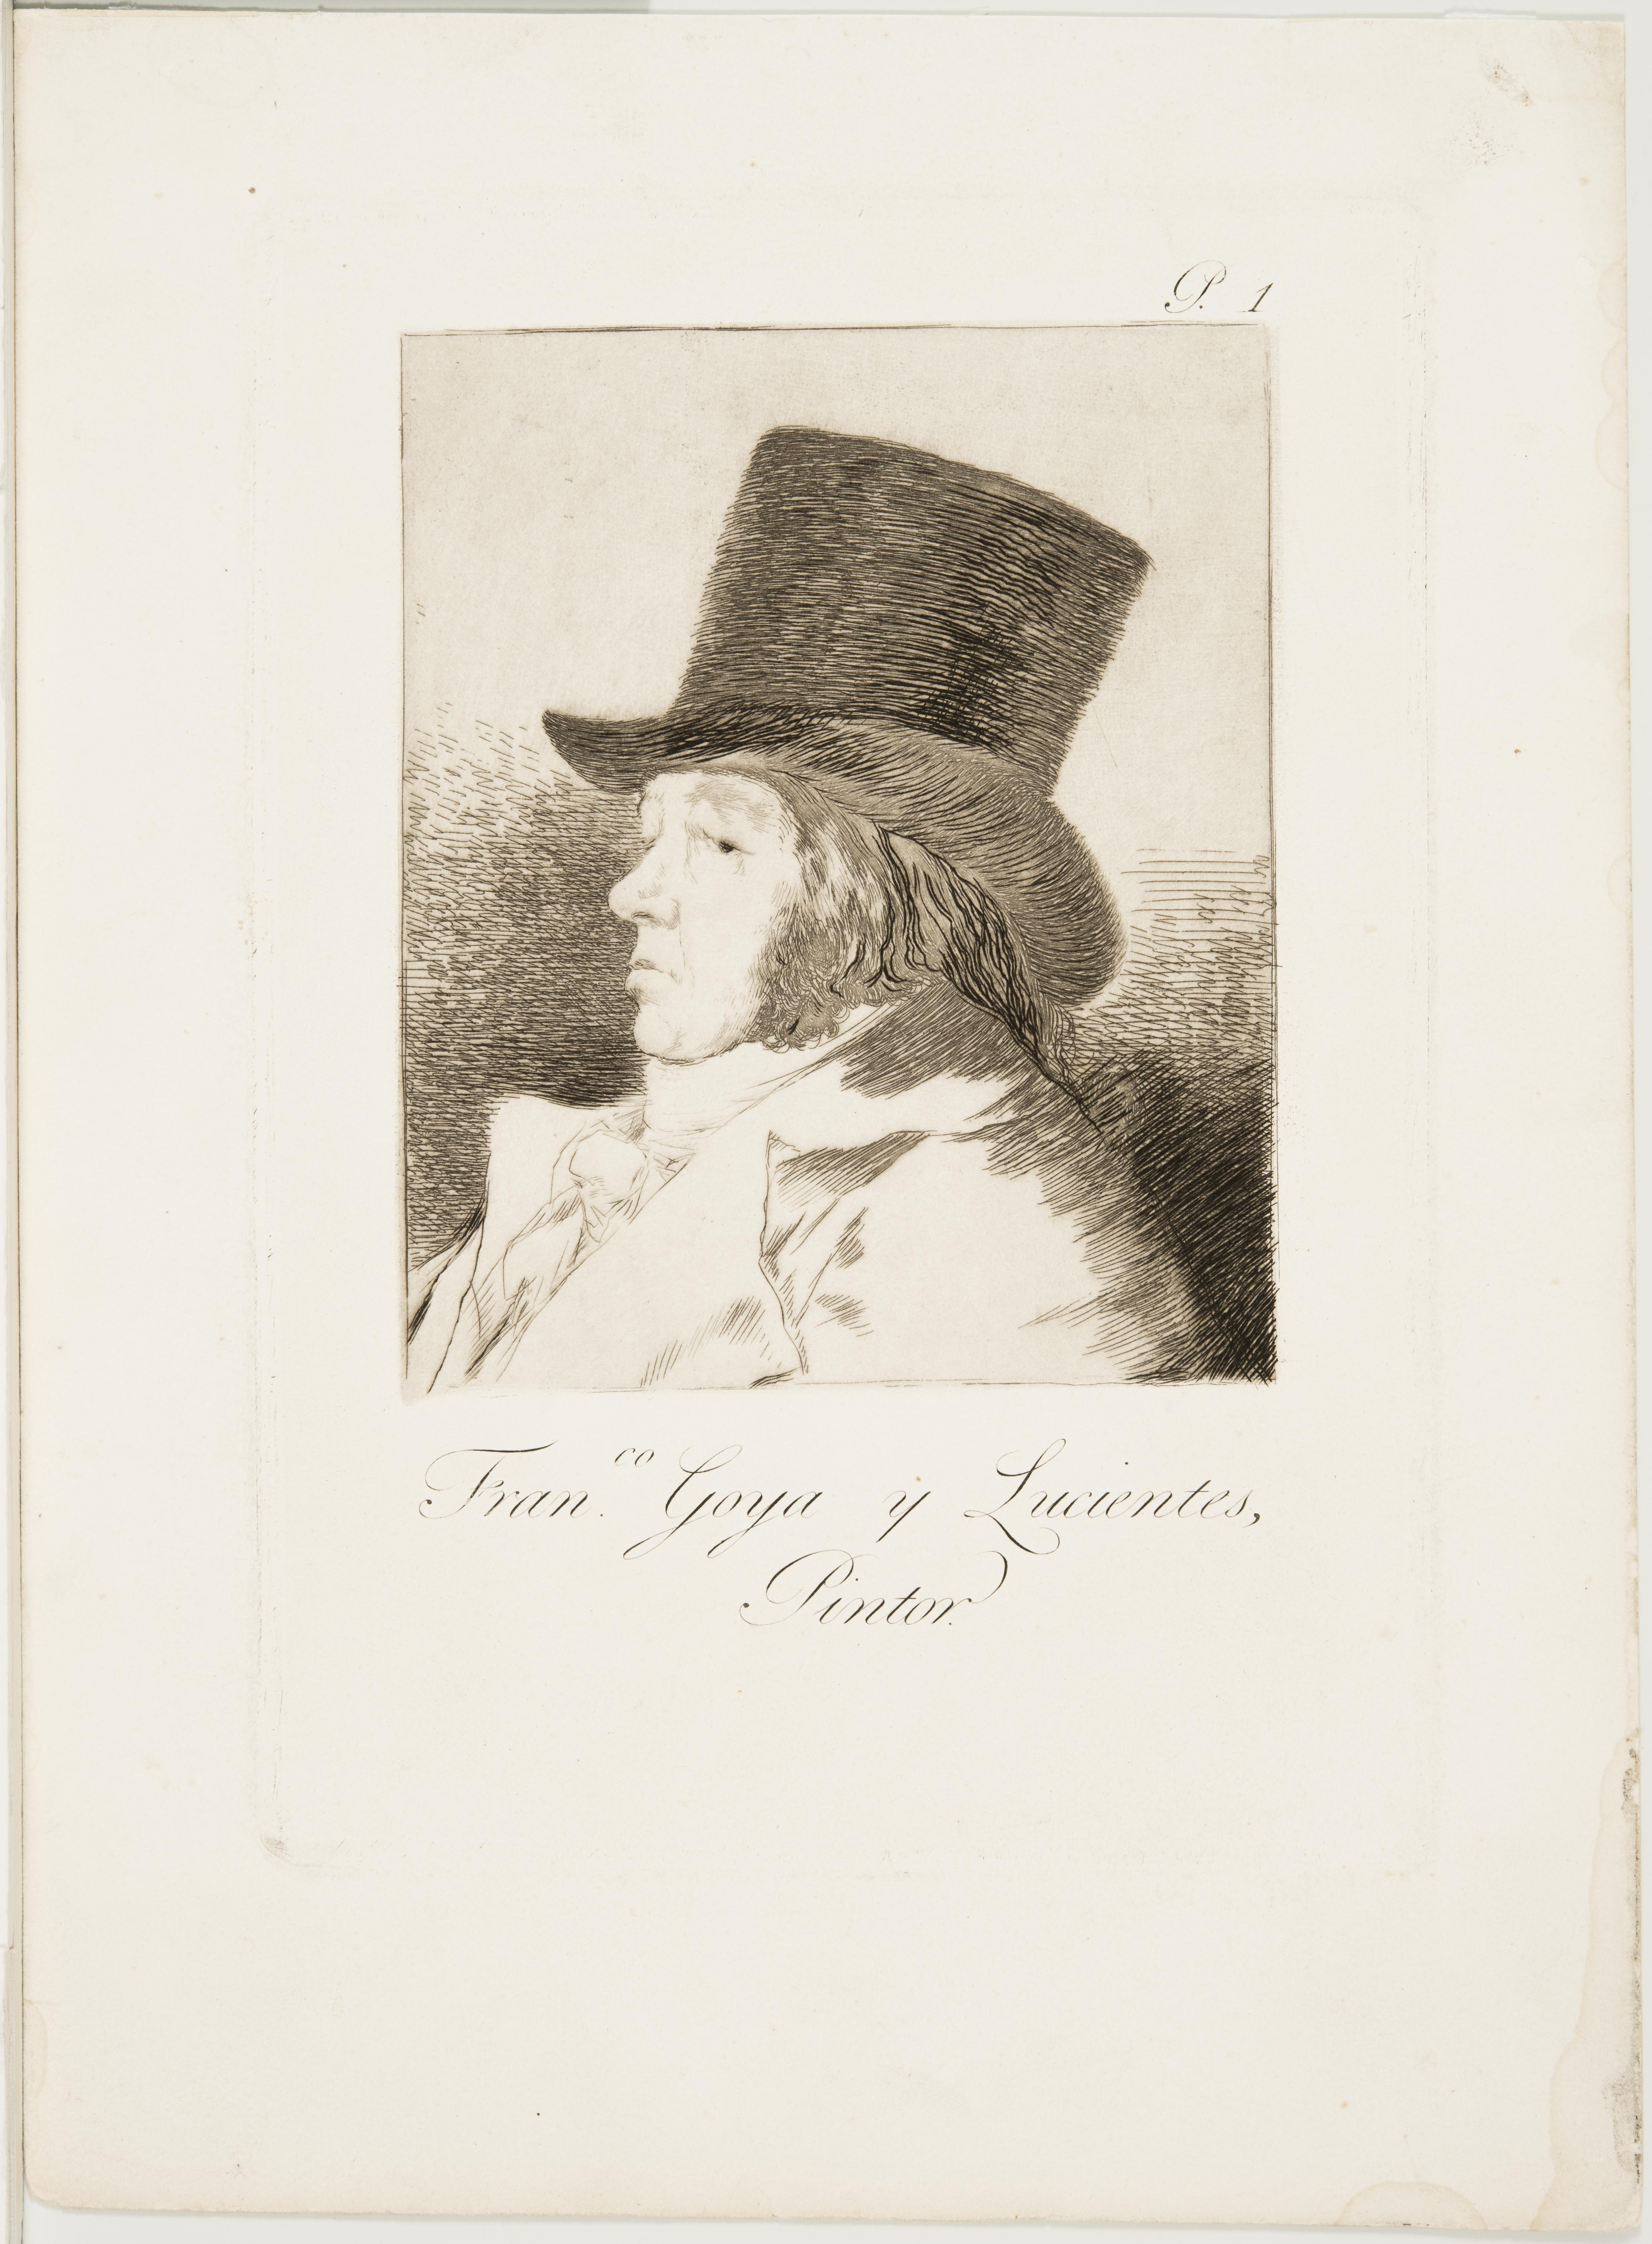 Francisco José de Goya y Lucientes, Self-portrait, 1794 - 1798